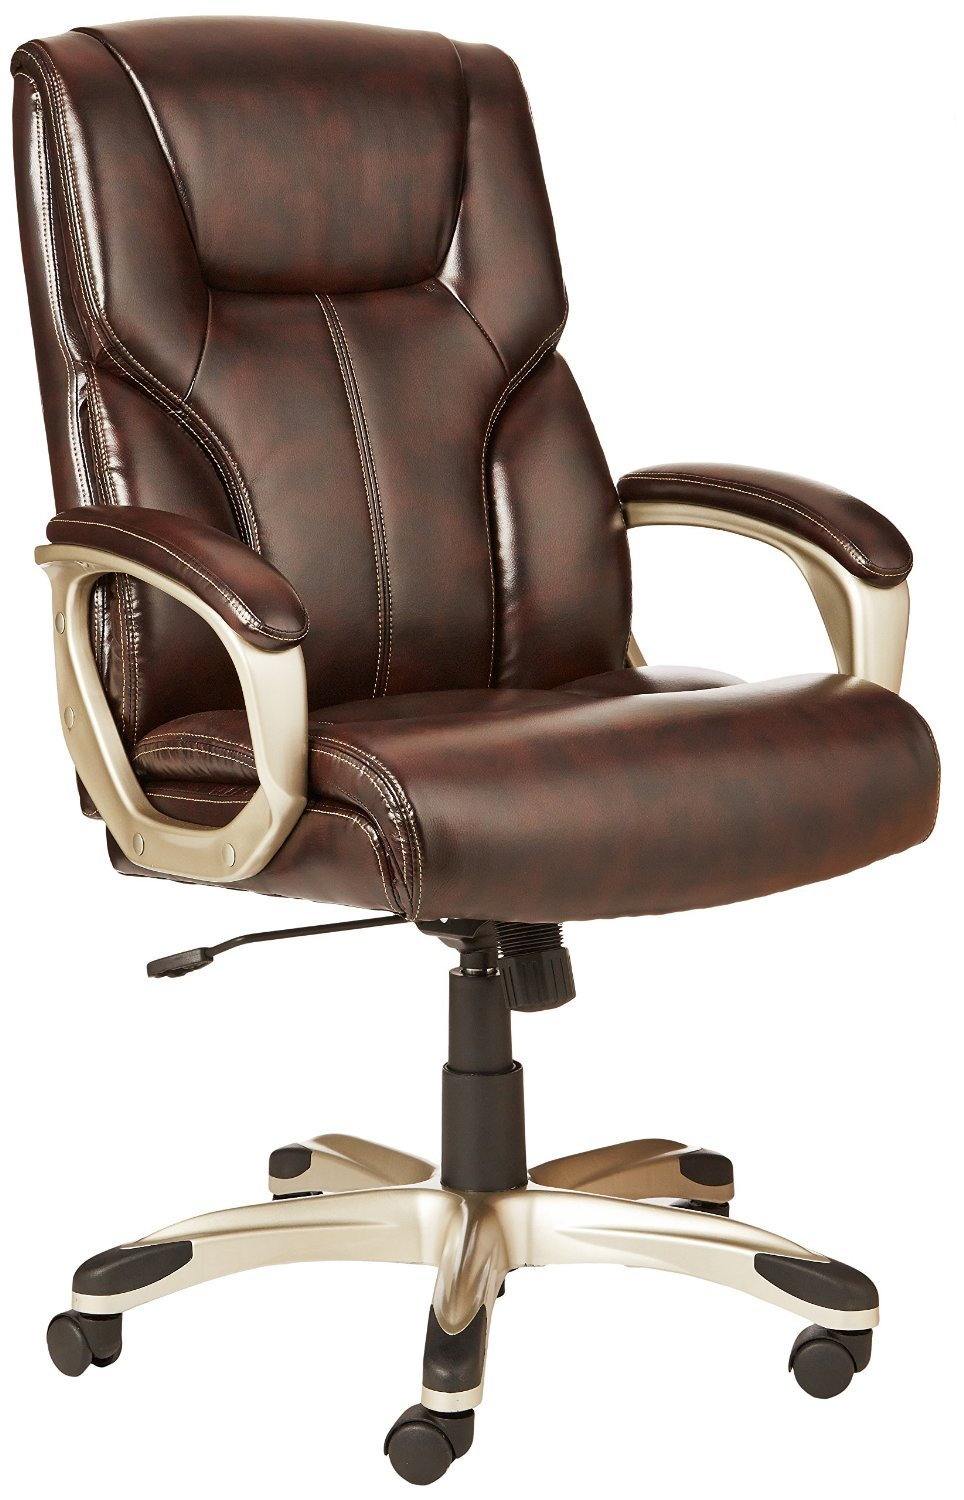 AmazonBasics High-Back Executive Swivel Office Desk Chair - Brown with Pewter Finish by AmazonBasics